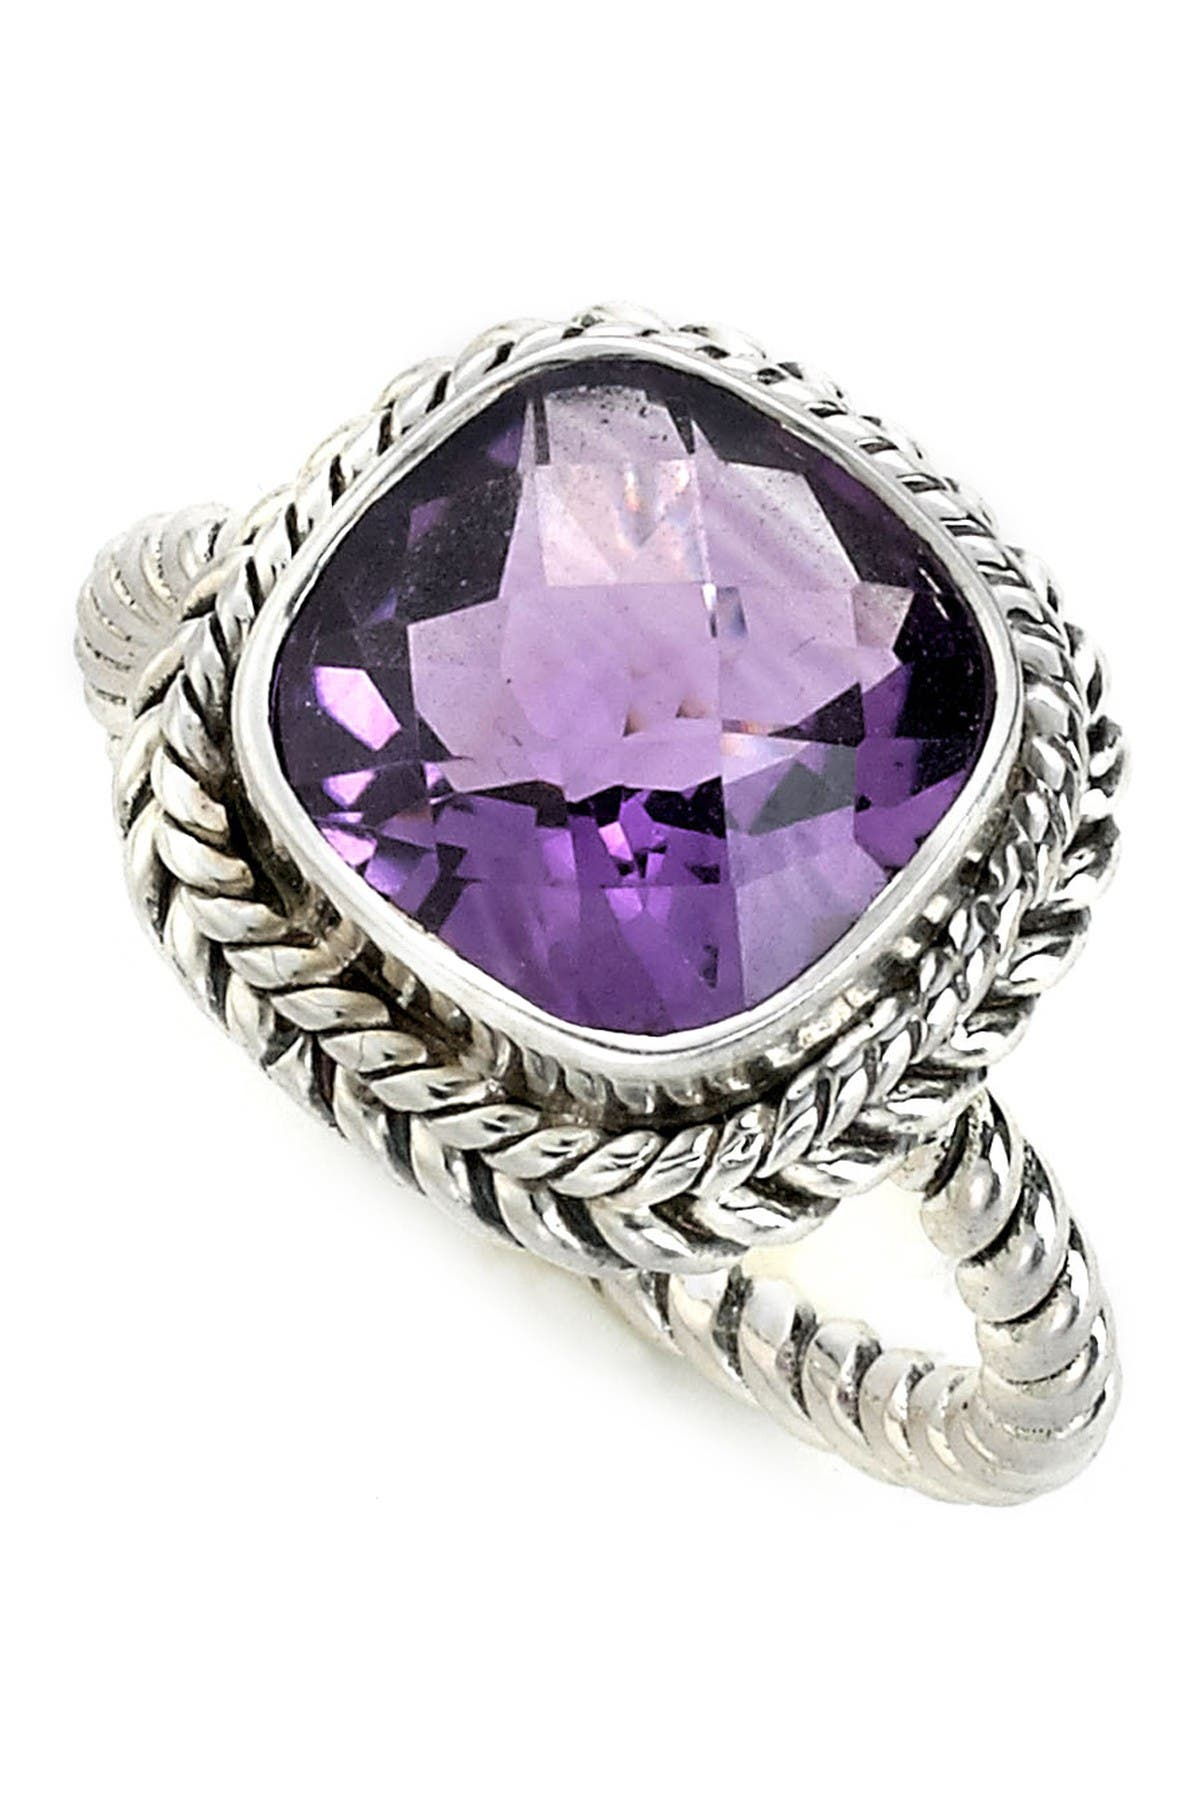 Image of Samuel B Jewelry Sterling Silver Cushion Cut Amethyst Twisted Shank Ring